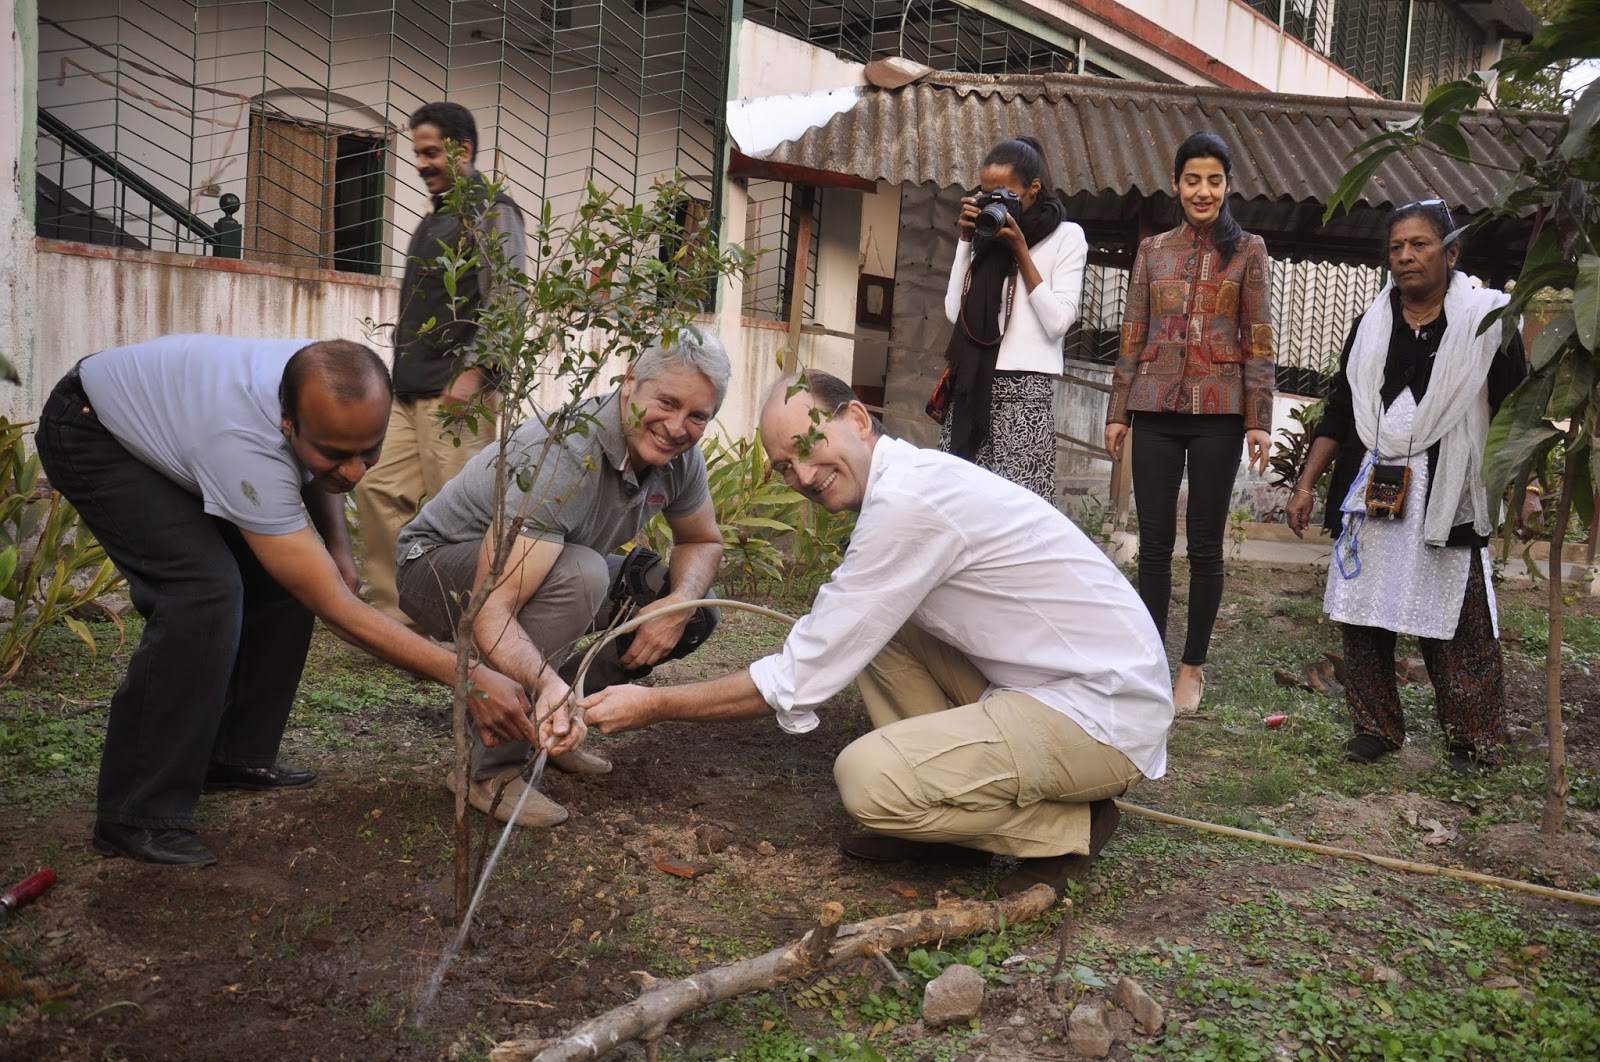 Planting a pomegranate tree- Philipp and Sara Schoeller, Walter and Delphine Raizner,